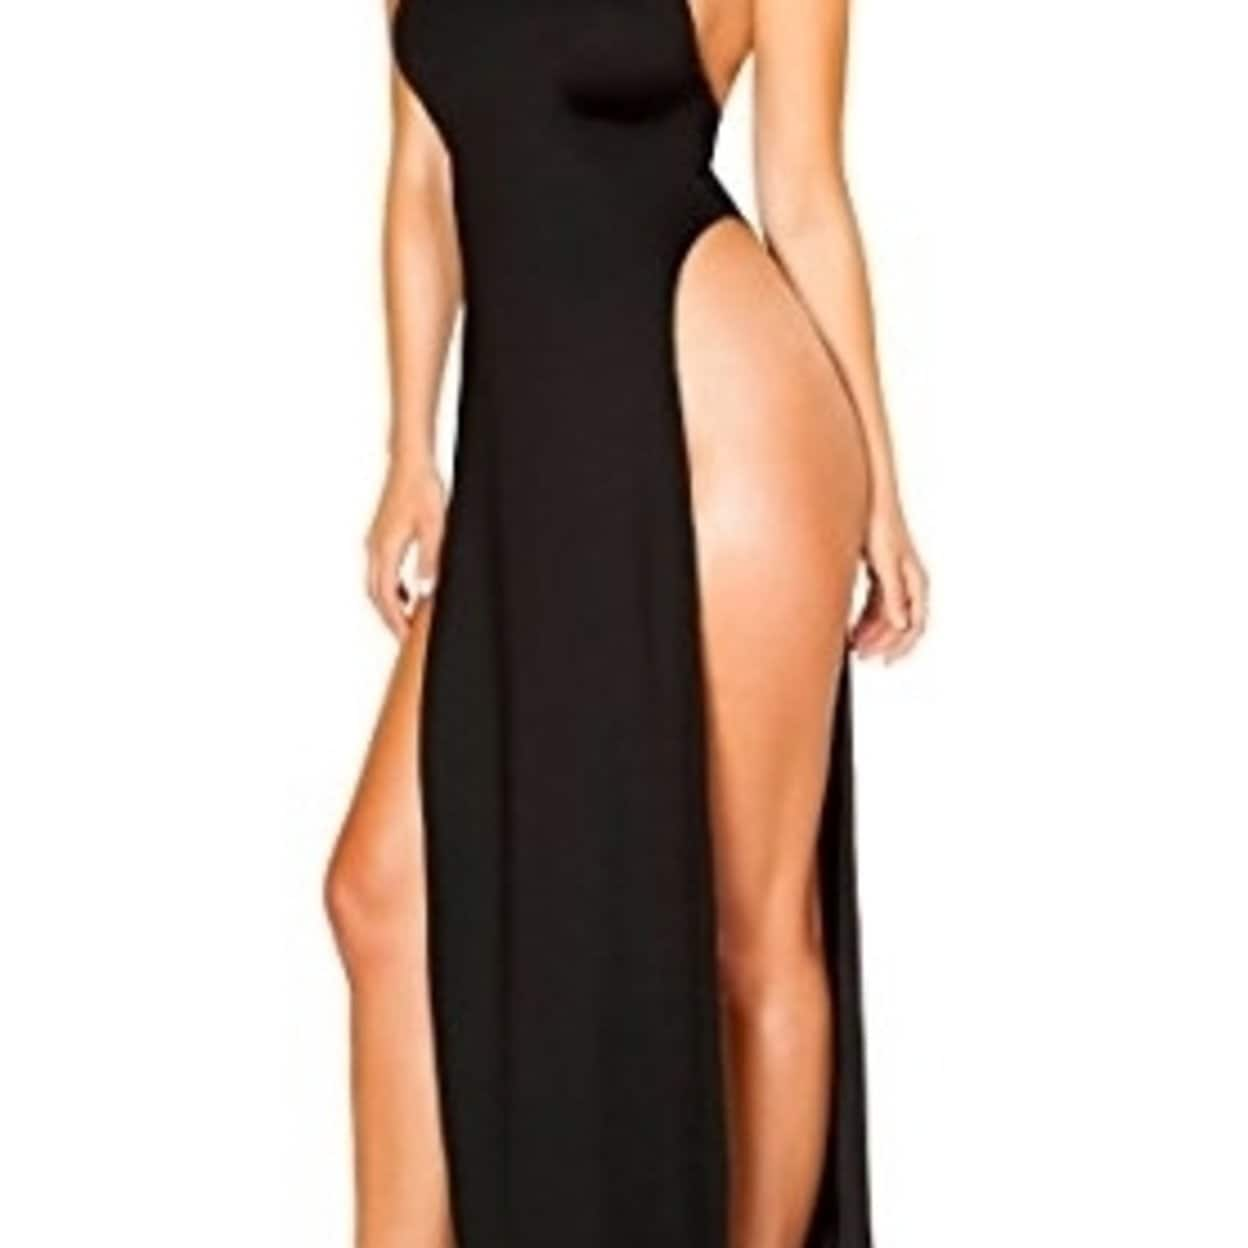 72cc0c300 Shop Roma Costume 3529-Blk-L Maxi Length Halter Neck Dress With High Slits  - Large - Free Shipping Today - Overstock - 27106532